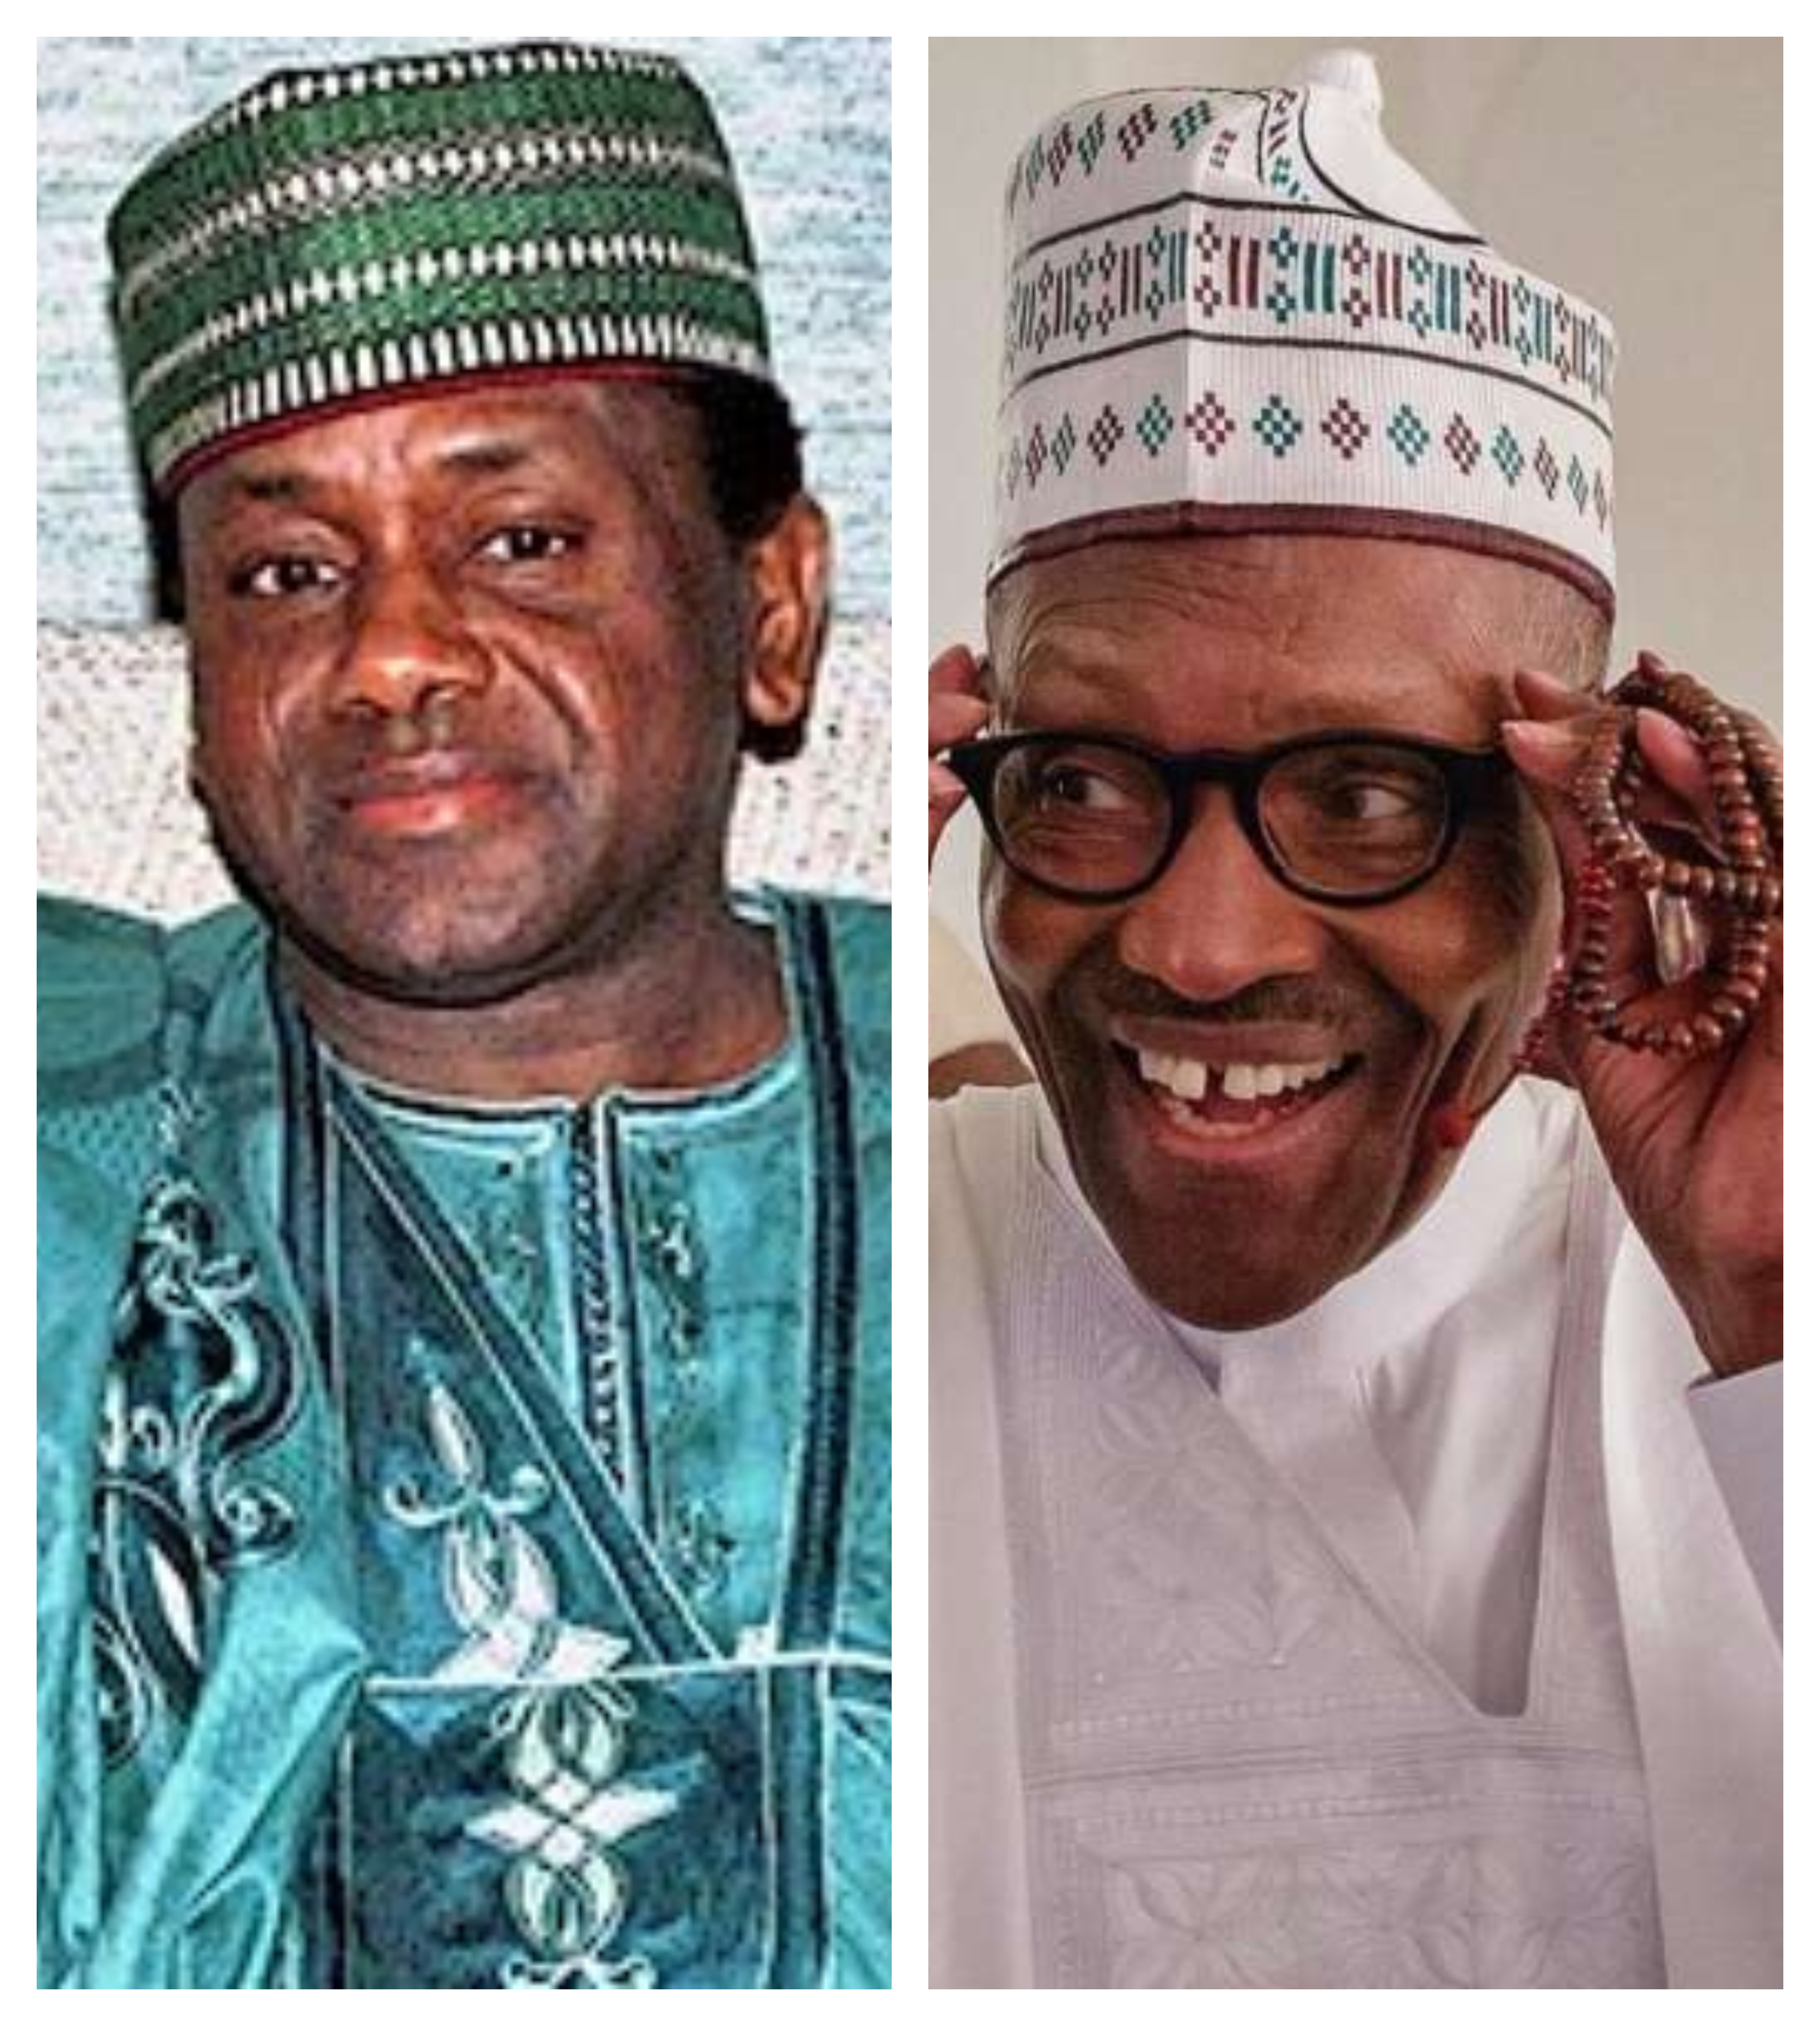 Buhari praises late military dictator Sani Abacha,  says